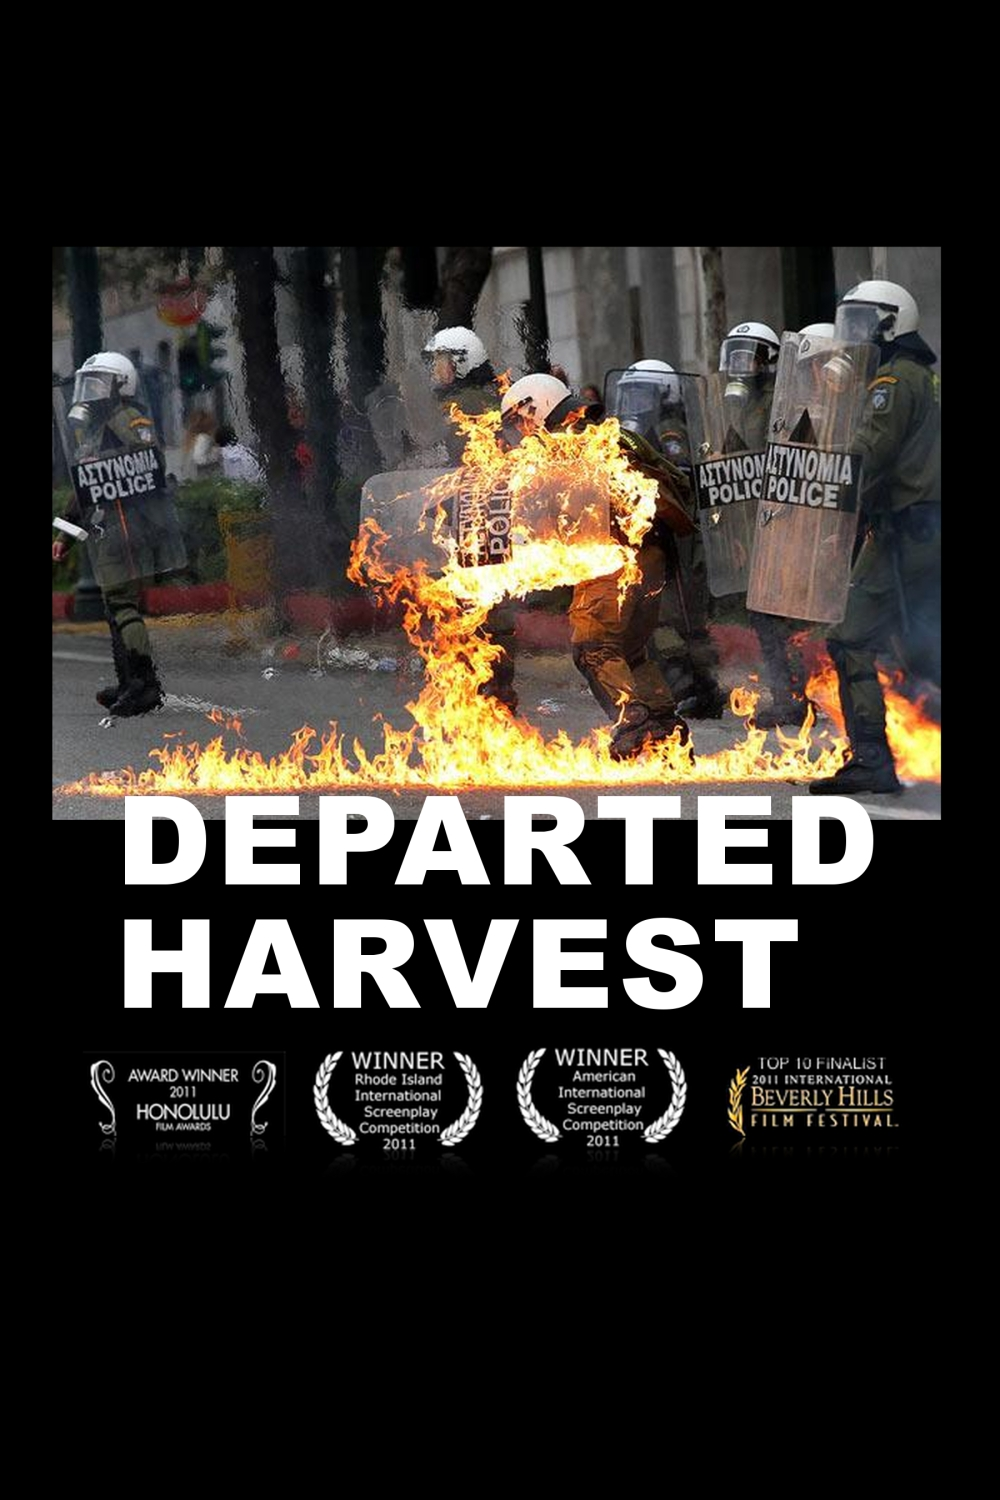 DEPARTED HARVEST POSTER4